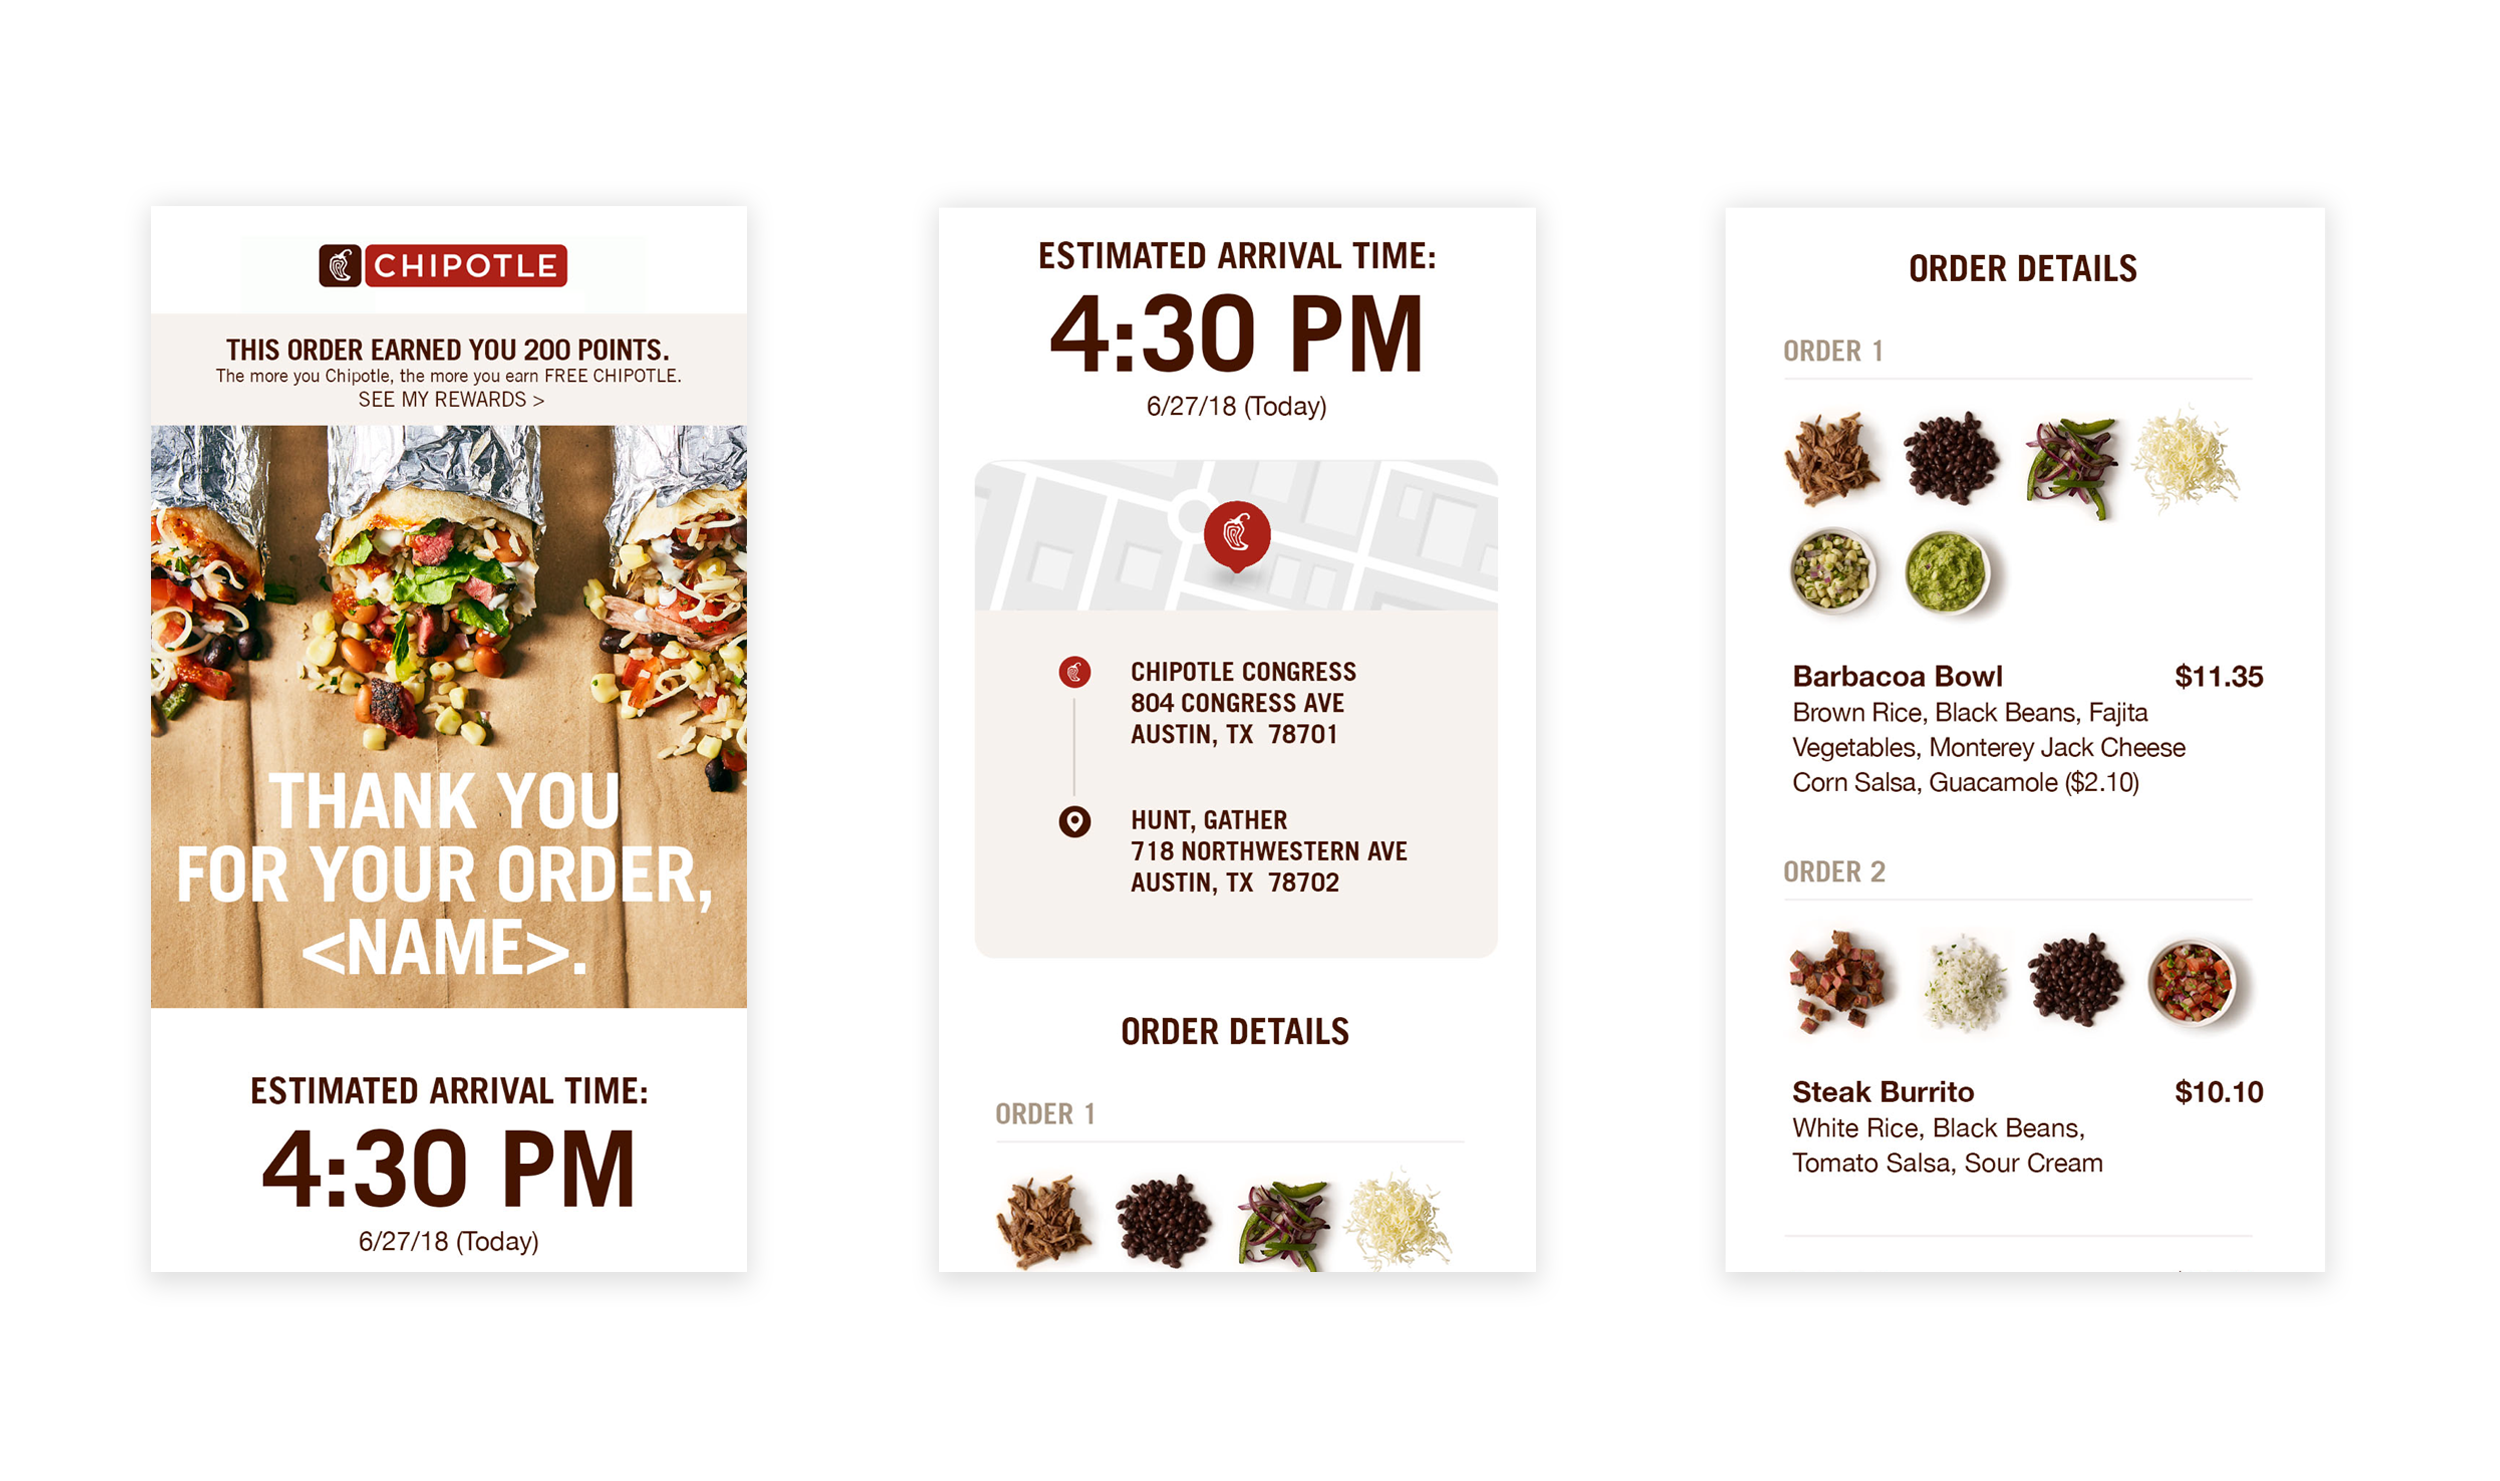 CHIPOTLE EMAIL DESIGN - I helped to design various emails, desktop and mobile, for Chipotle's launch of their Rewards program as well as refresh some of their current emails.